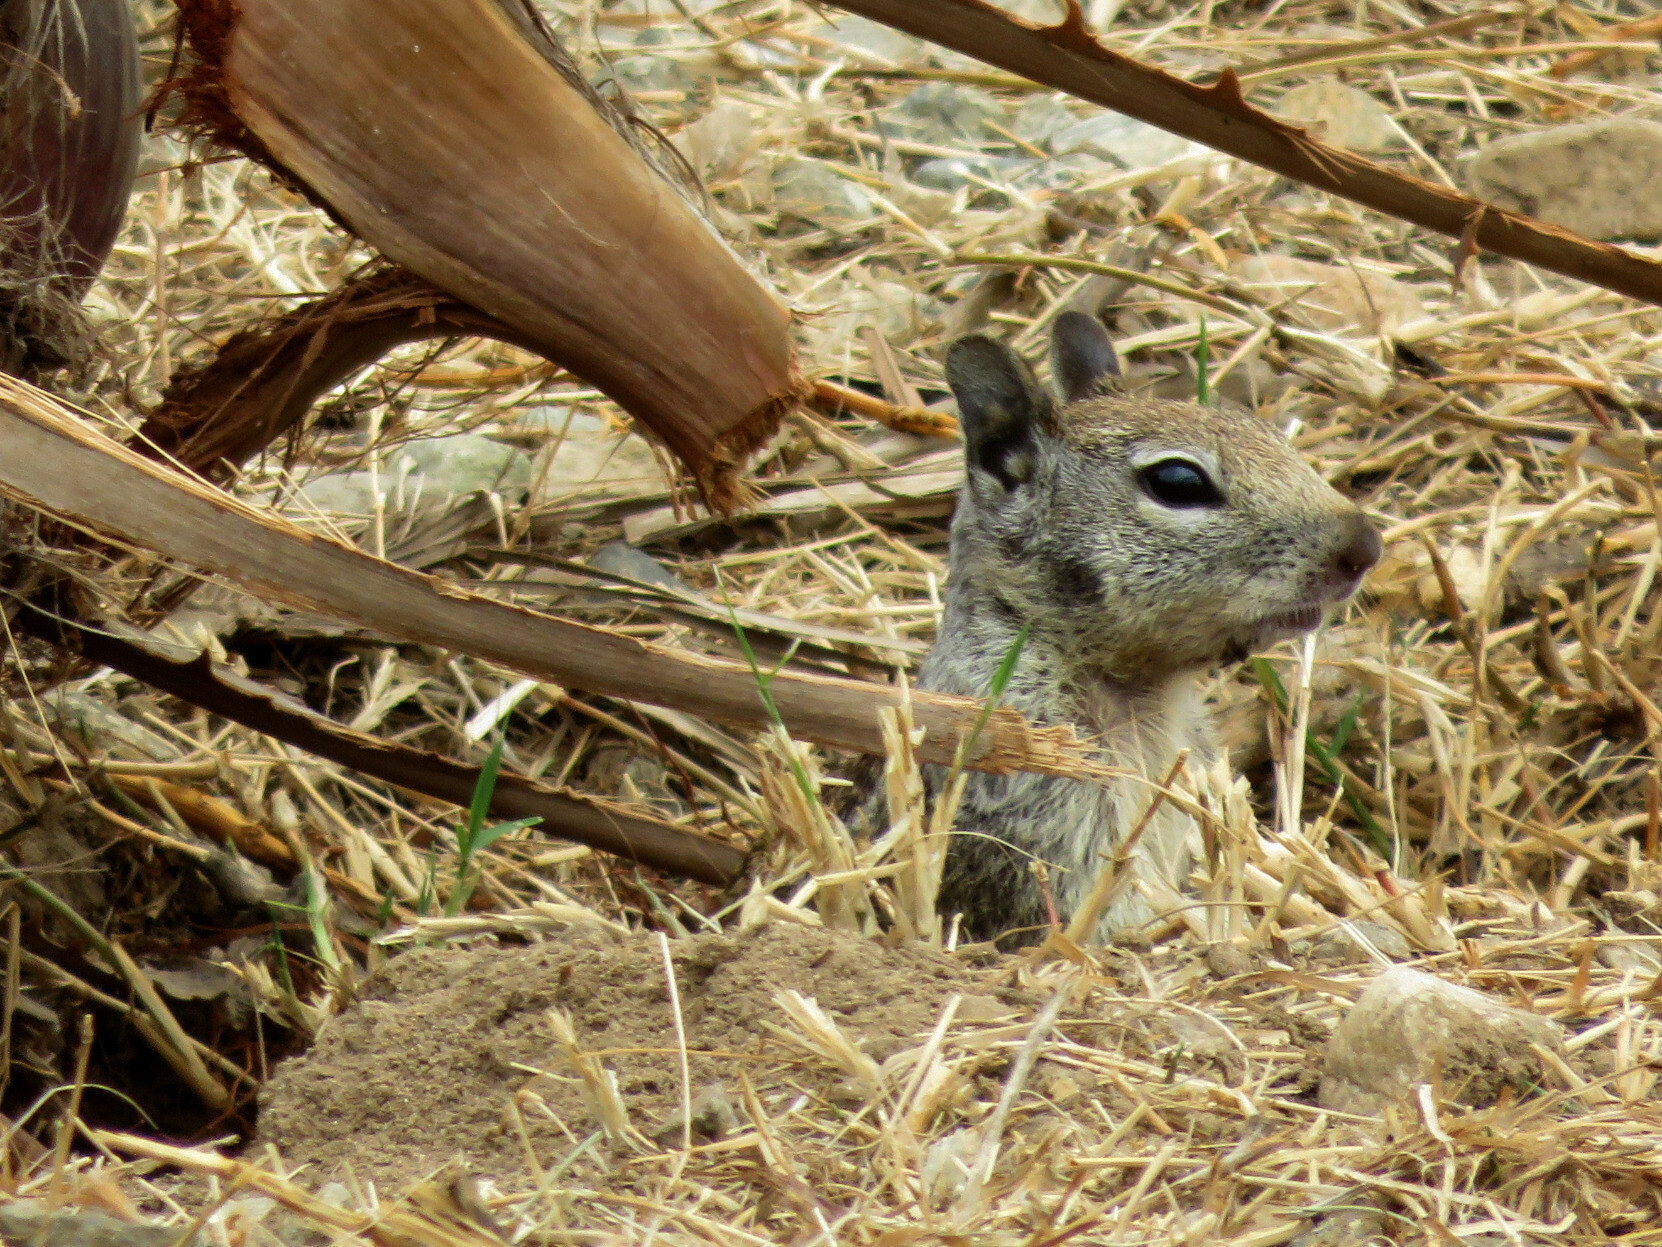 A California Ground Squirrel, light brown and gray, poking its head out of a burrow surrounded by dried grass.